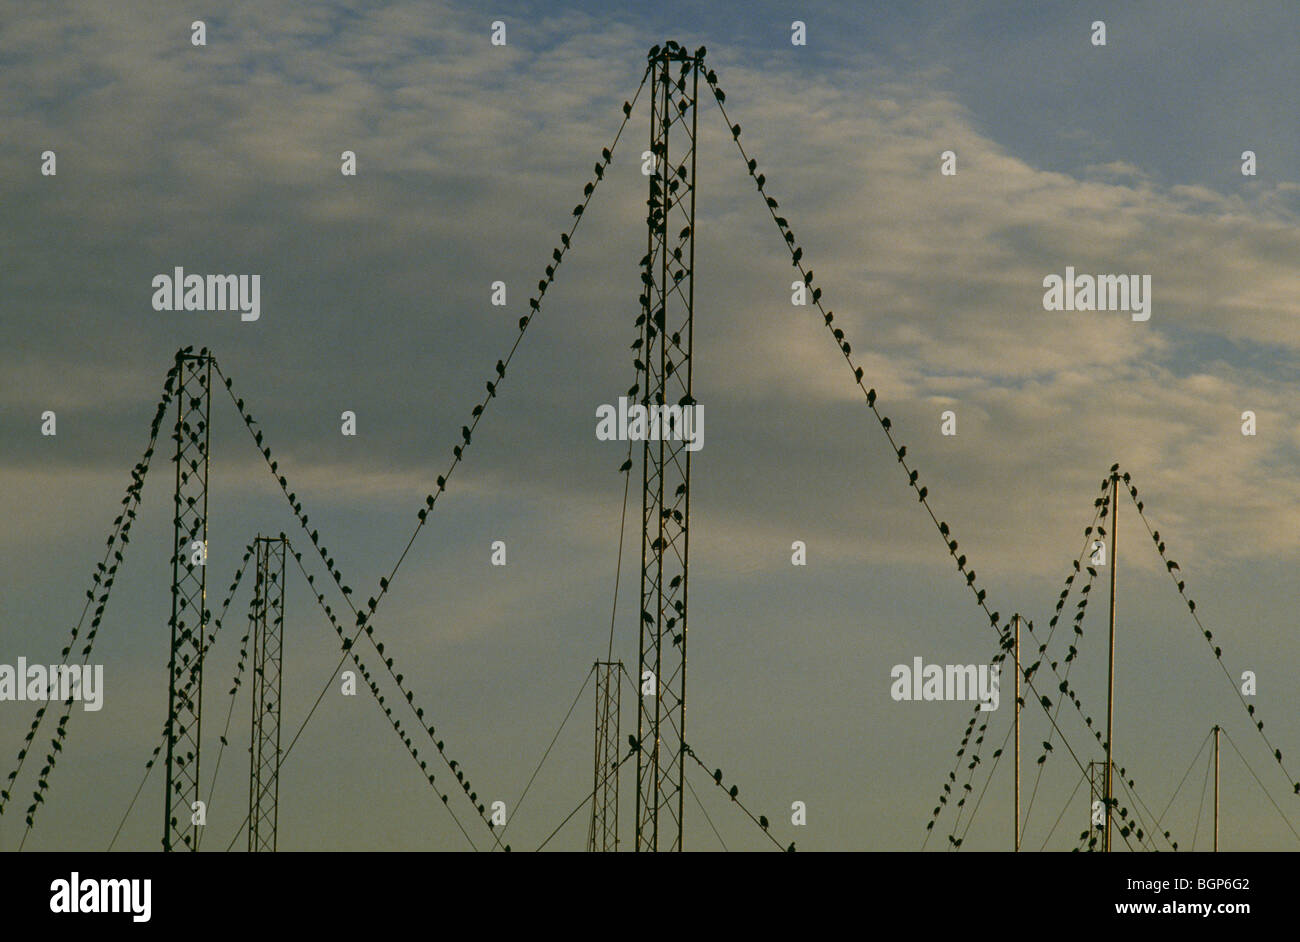 Starlings on electric lines, Sweden. - Stock Image